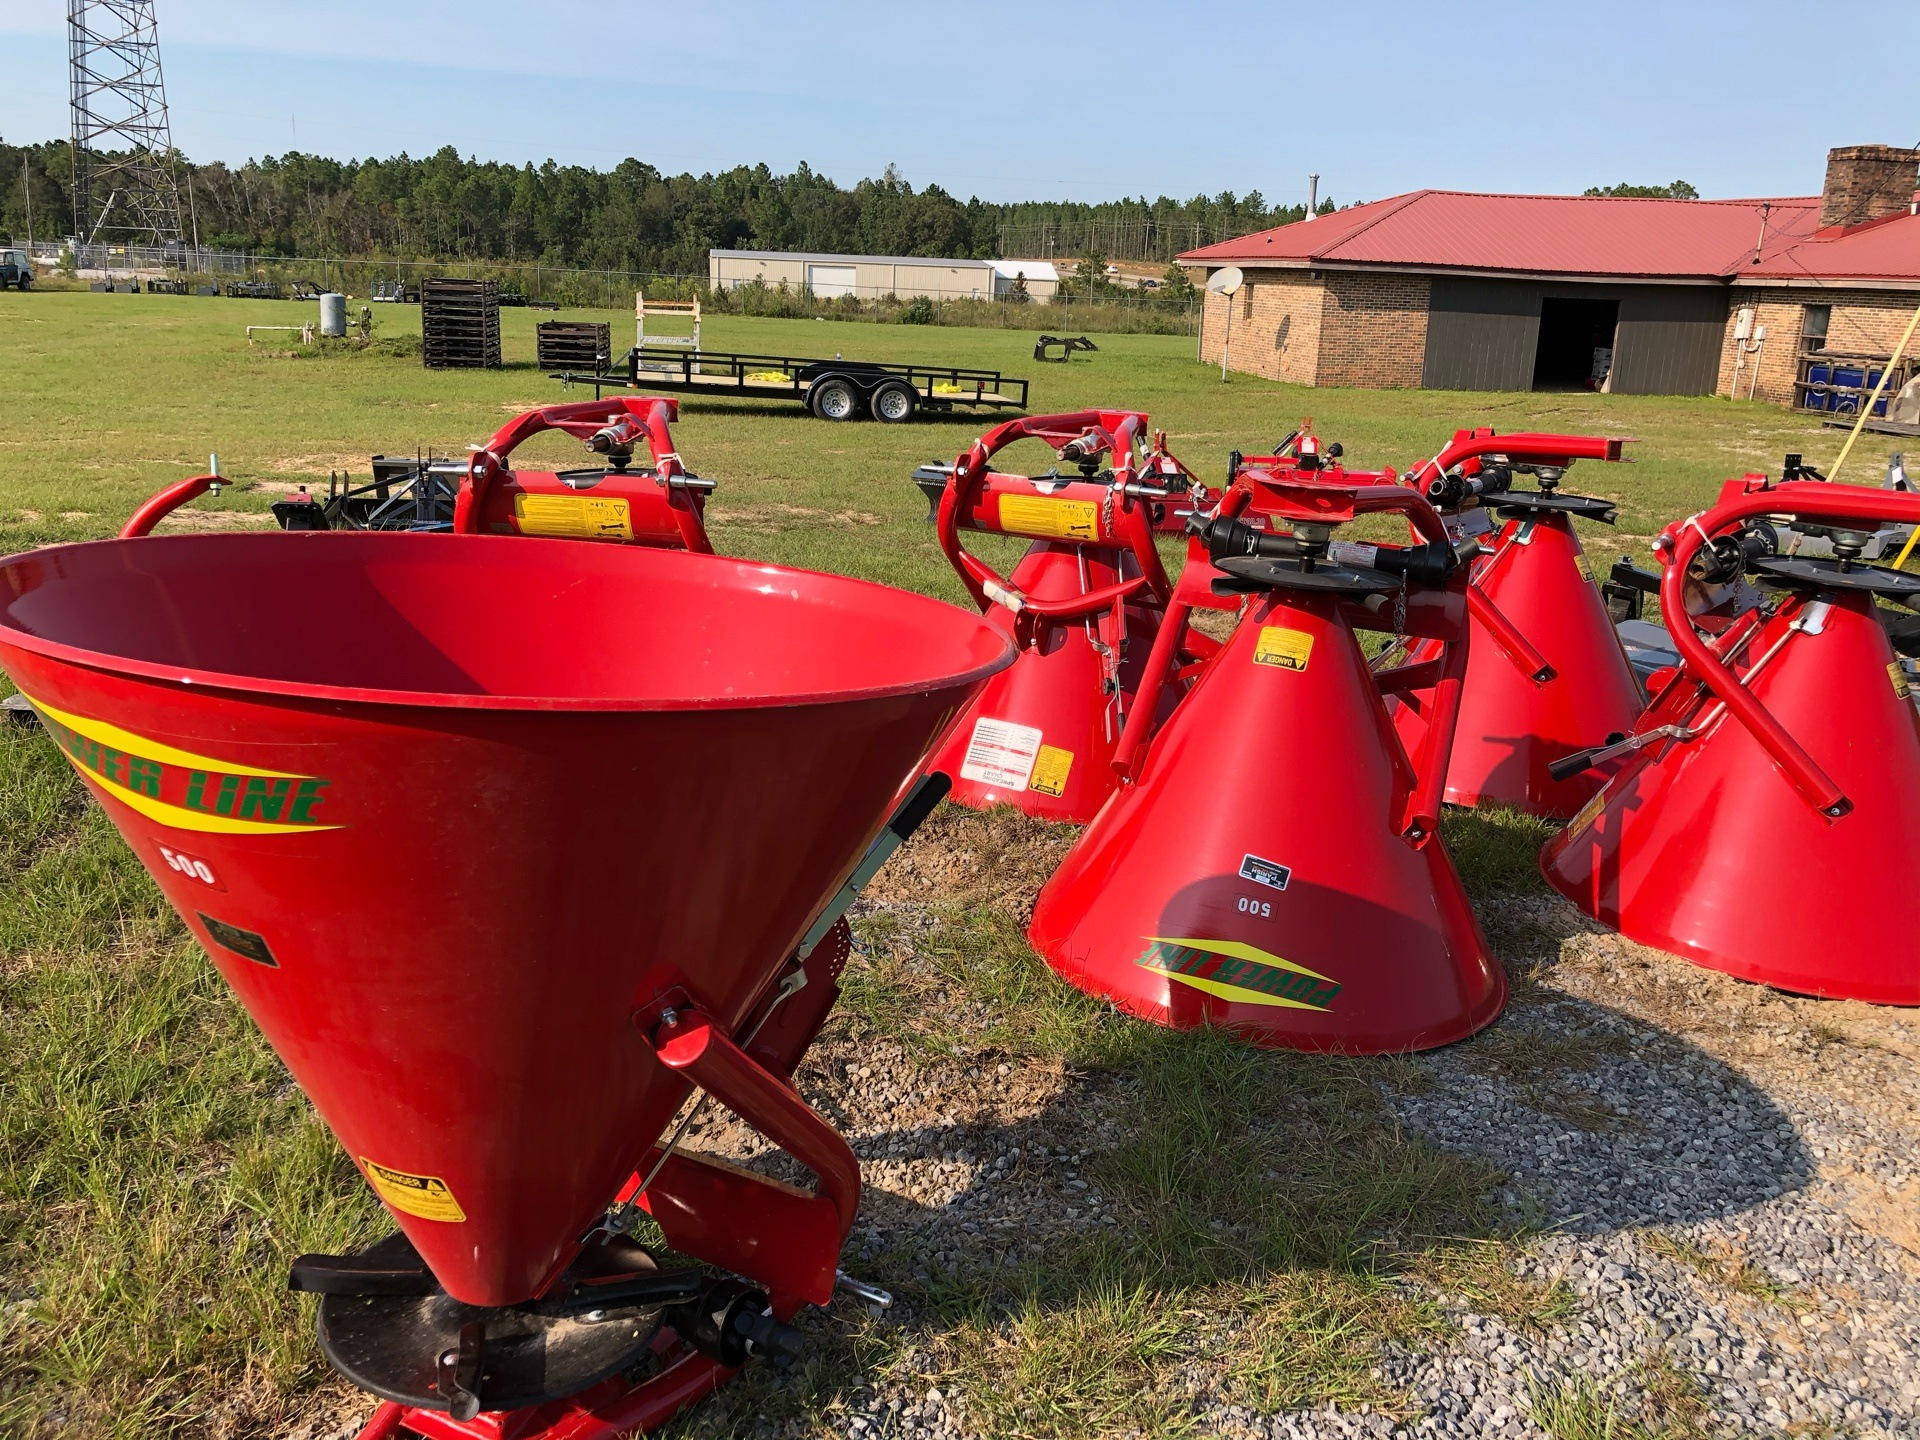 2020 Ranchland Implements Cosmo Spreader 750lbs Capacity in Saucier, Mississippi - Photo 1